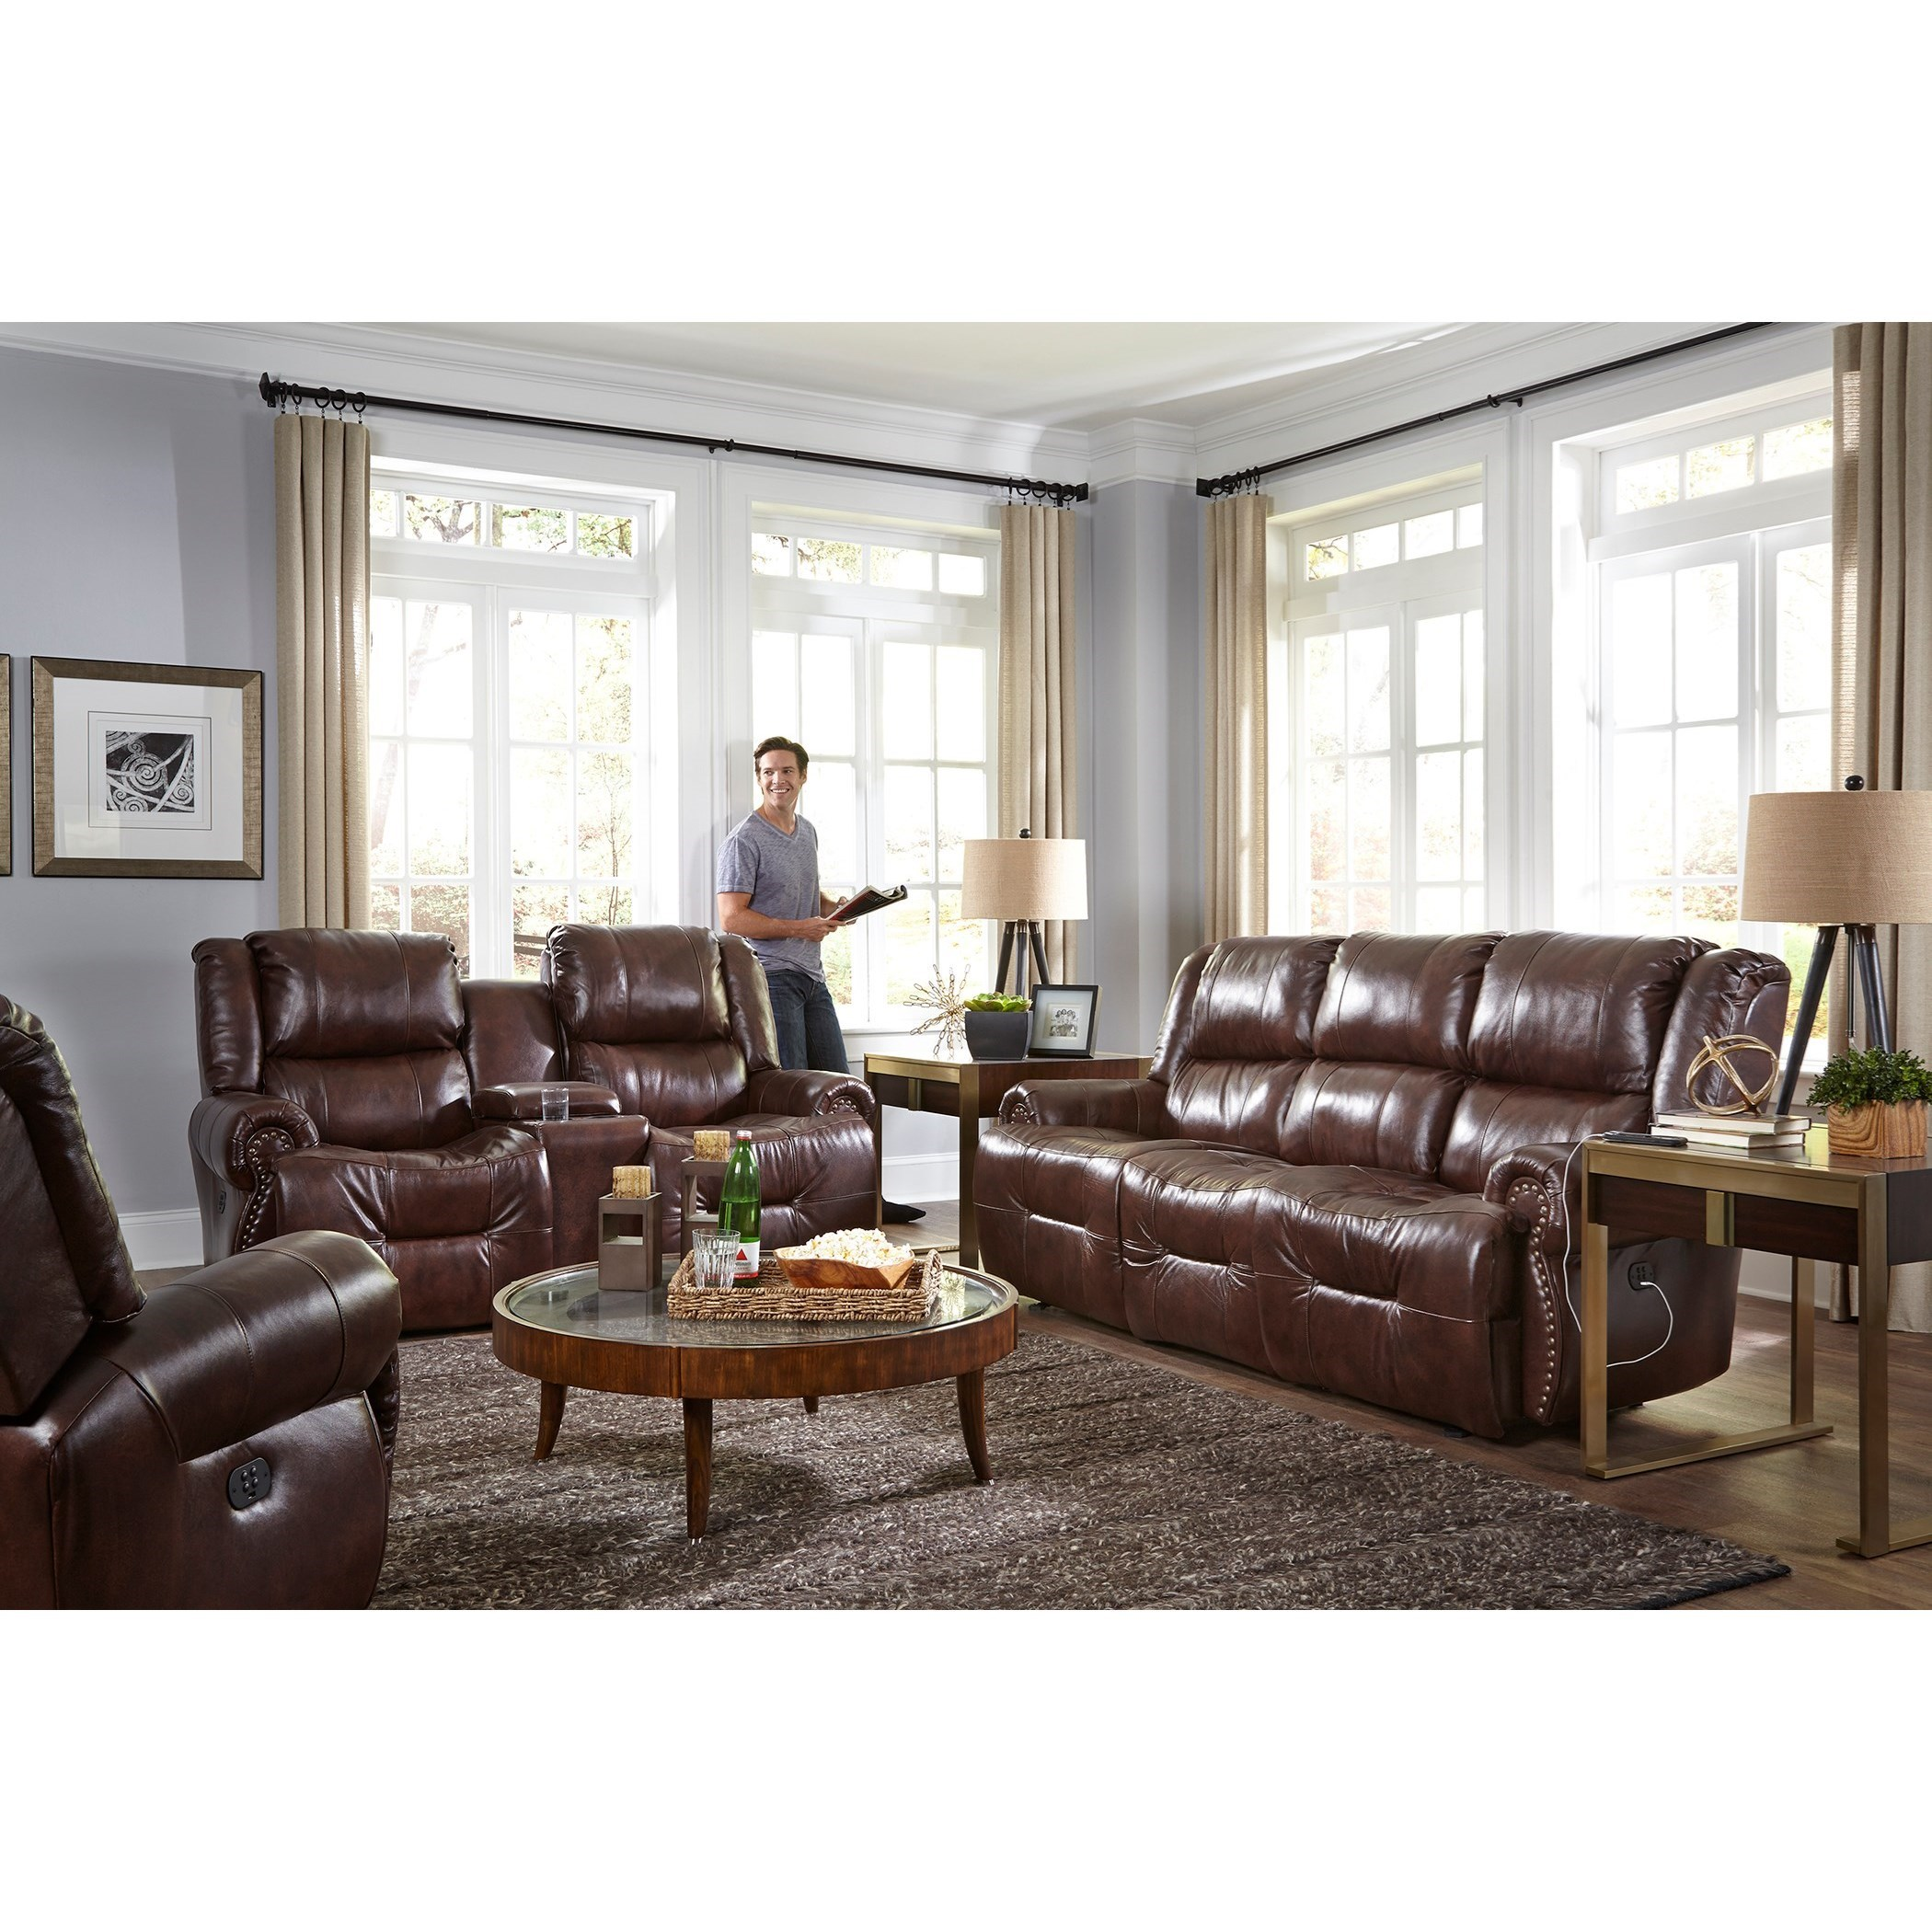 Genet Power Reclining Living Room Group by Best Home Furnishings at Saugerties Furniture Mart